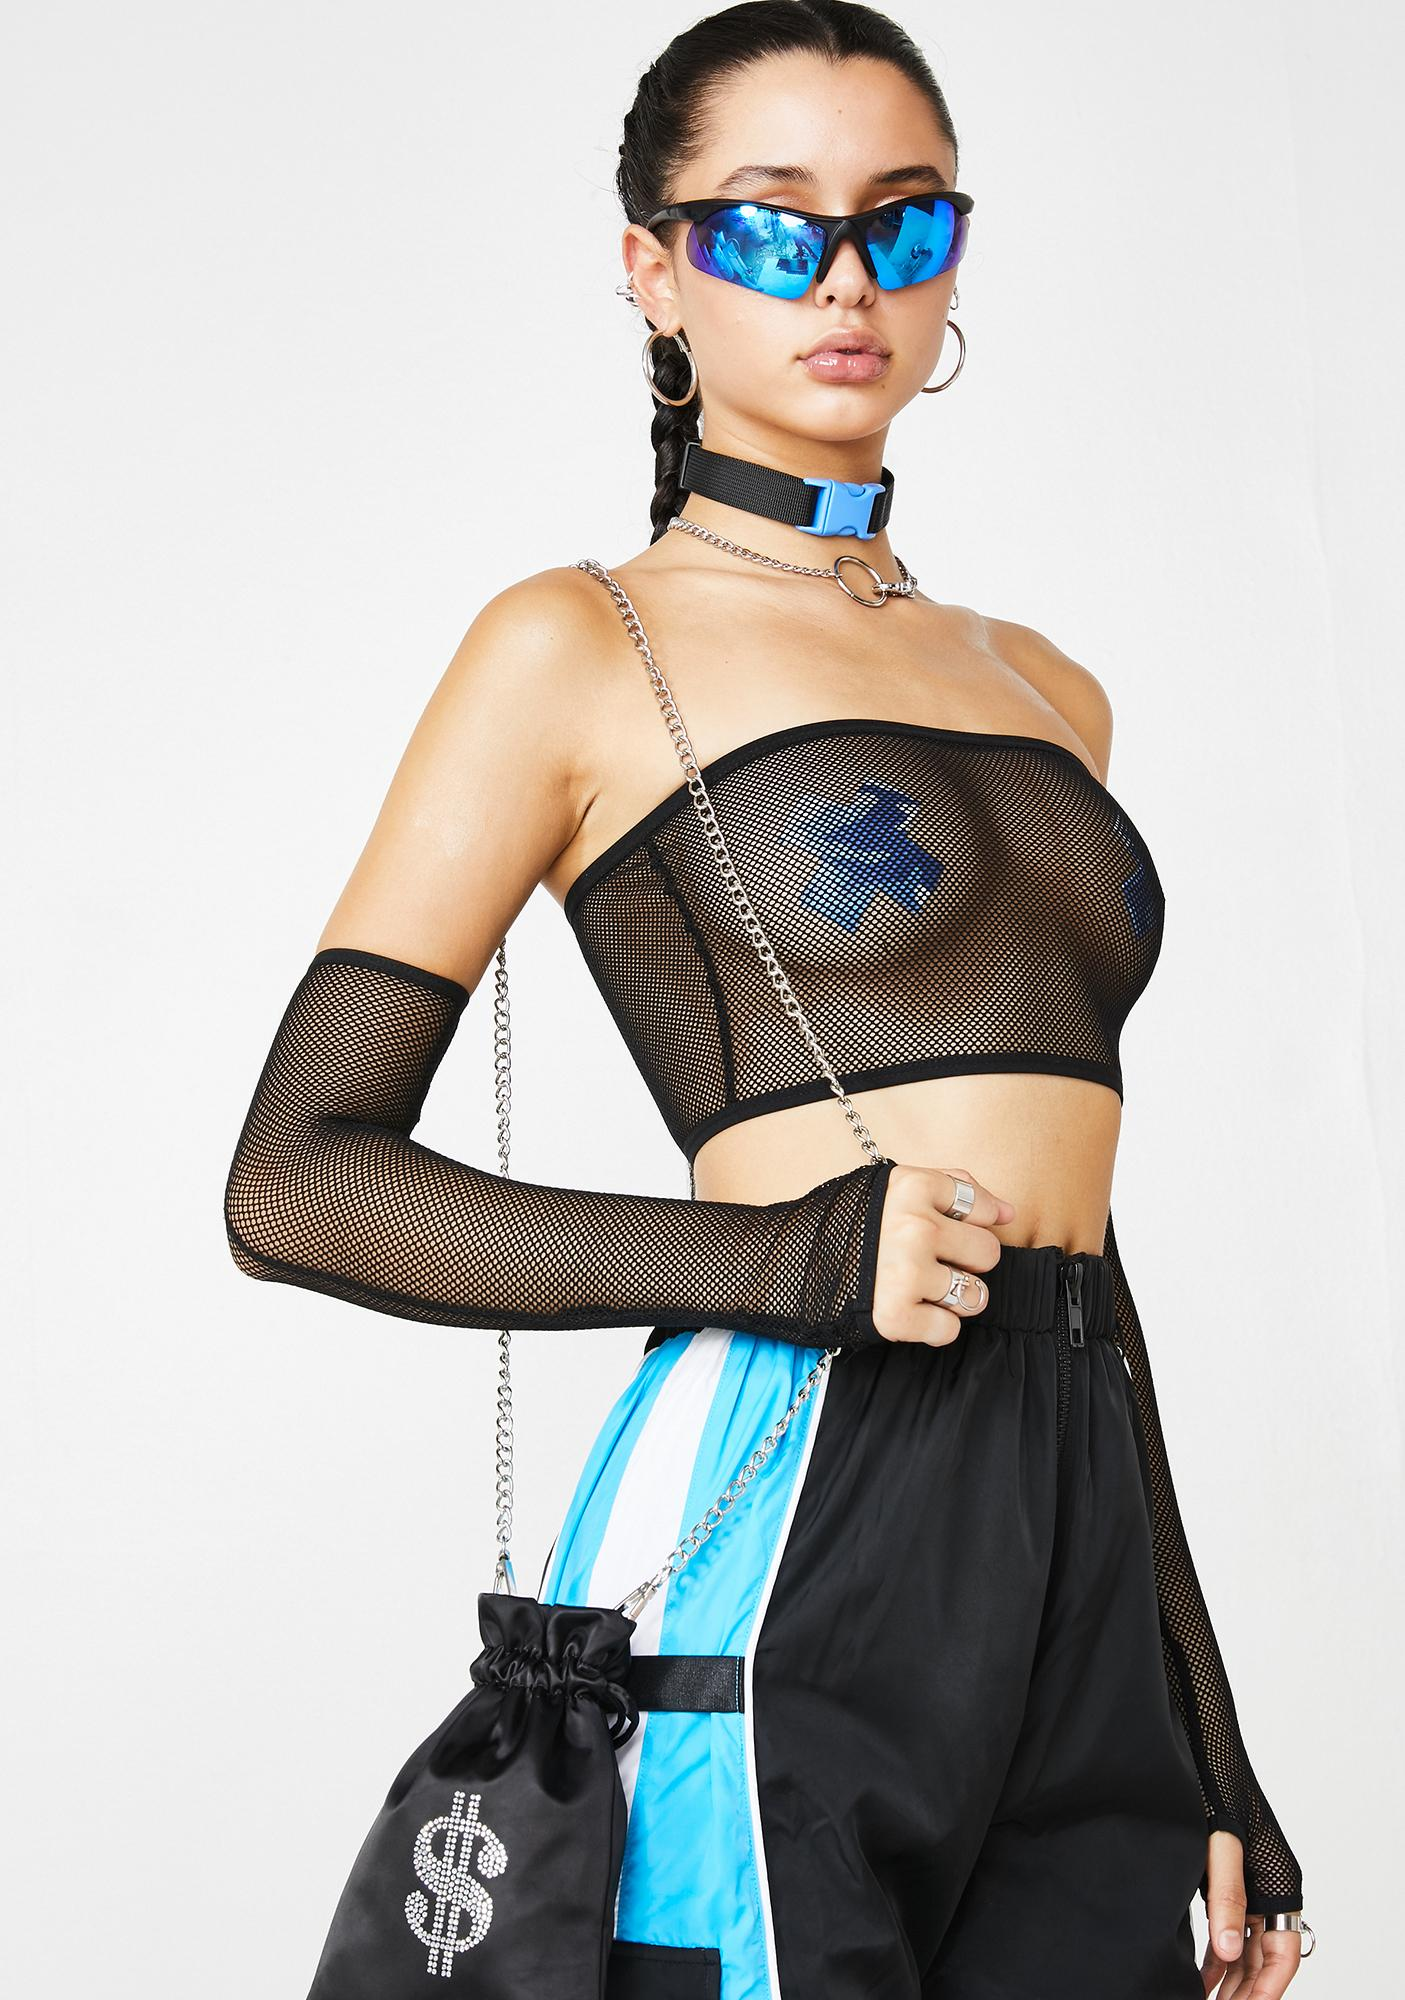 Poster Grl Party Edition Tube Top N' Gloves Set